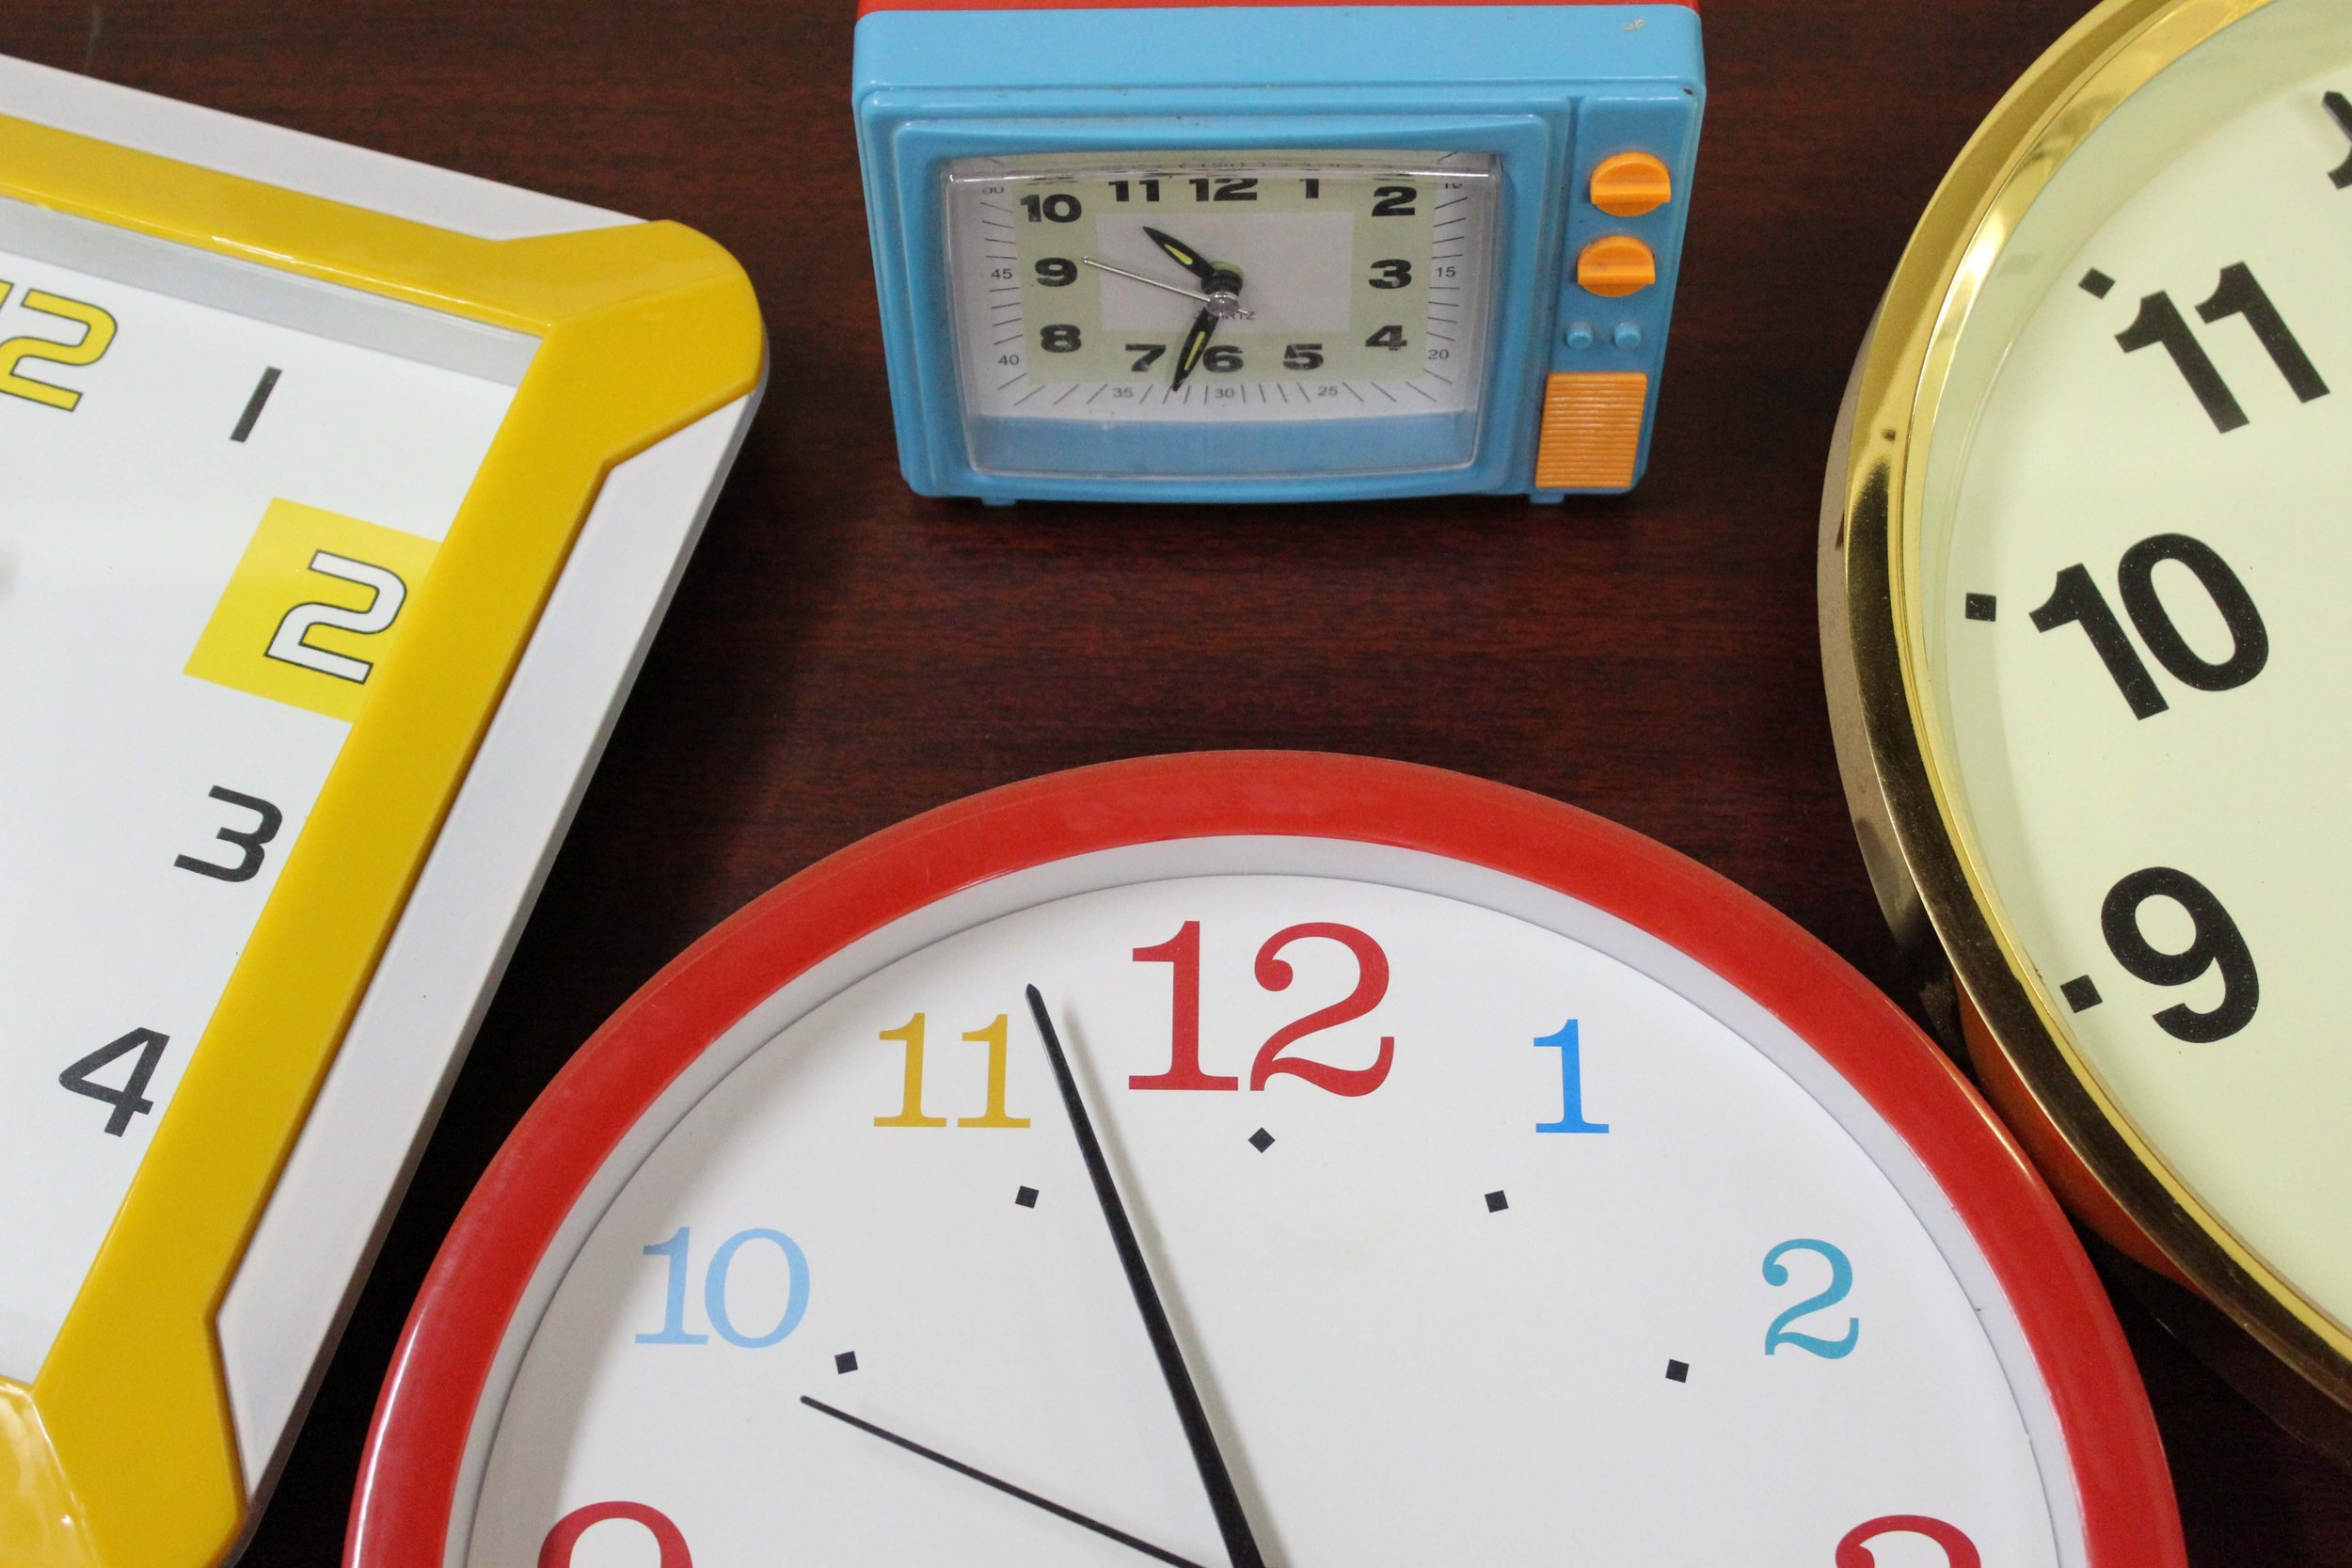 watch-hand-clock-time-number-hour-692211-pxhere.com.jpg